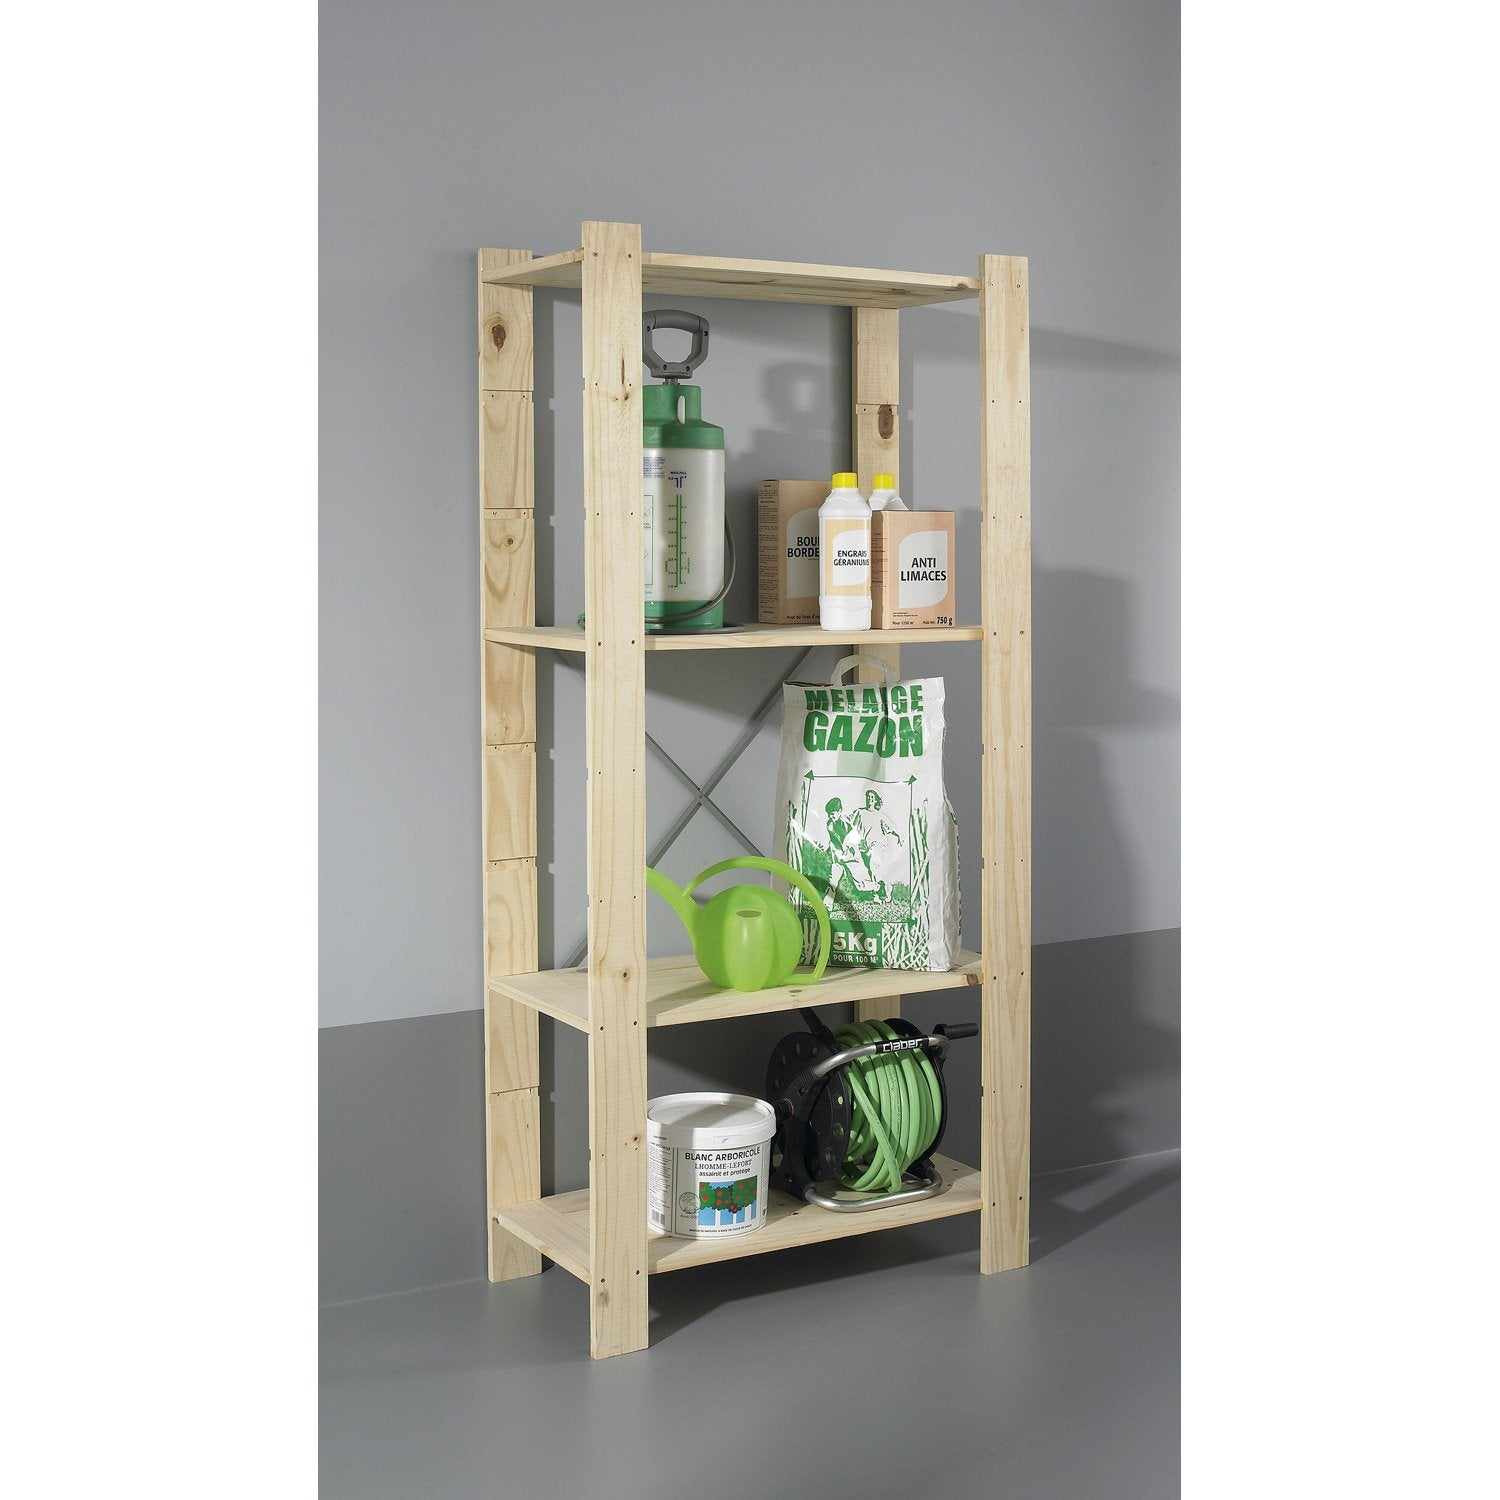 Etag re en pin 4 tablettes mod le spacea l82xh170xp40cm leroy merlin - Etagere garage leroy merlin ...